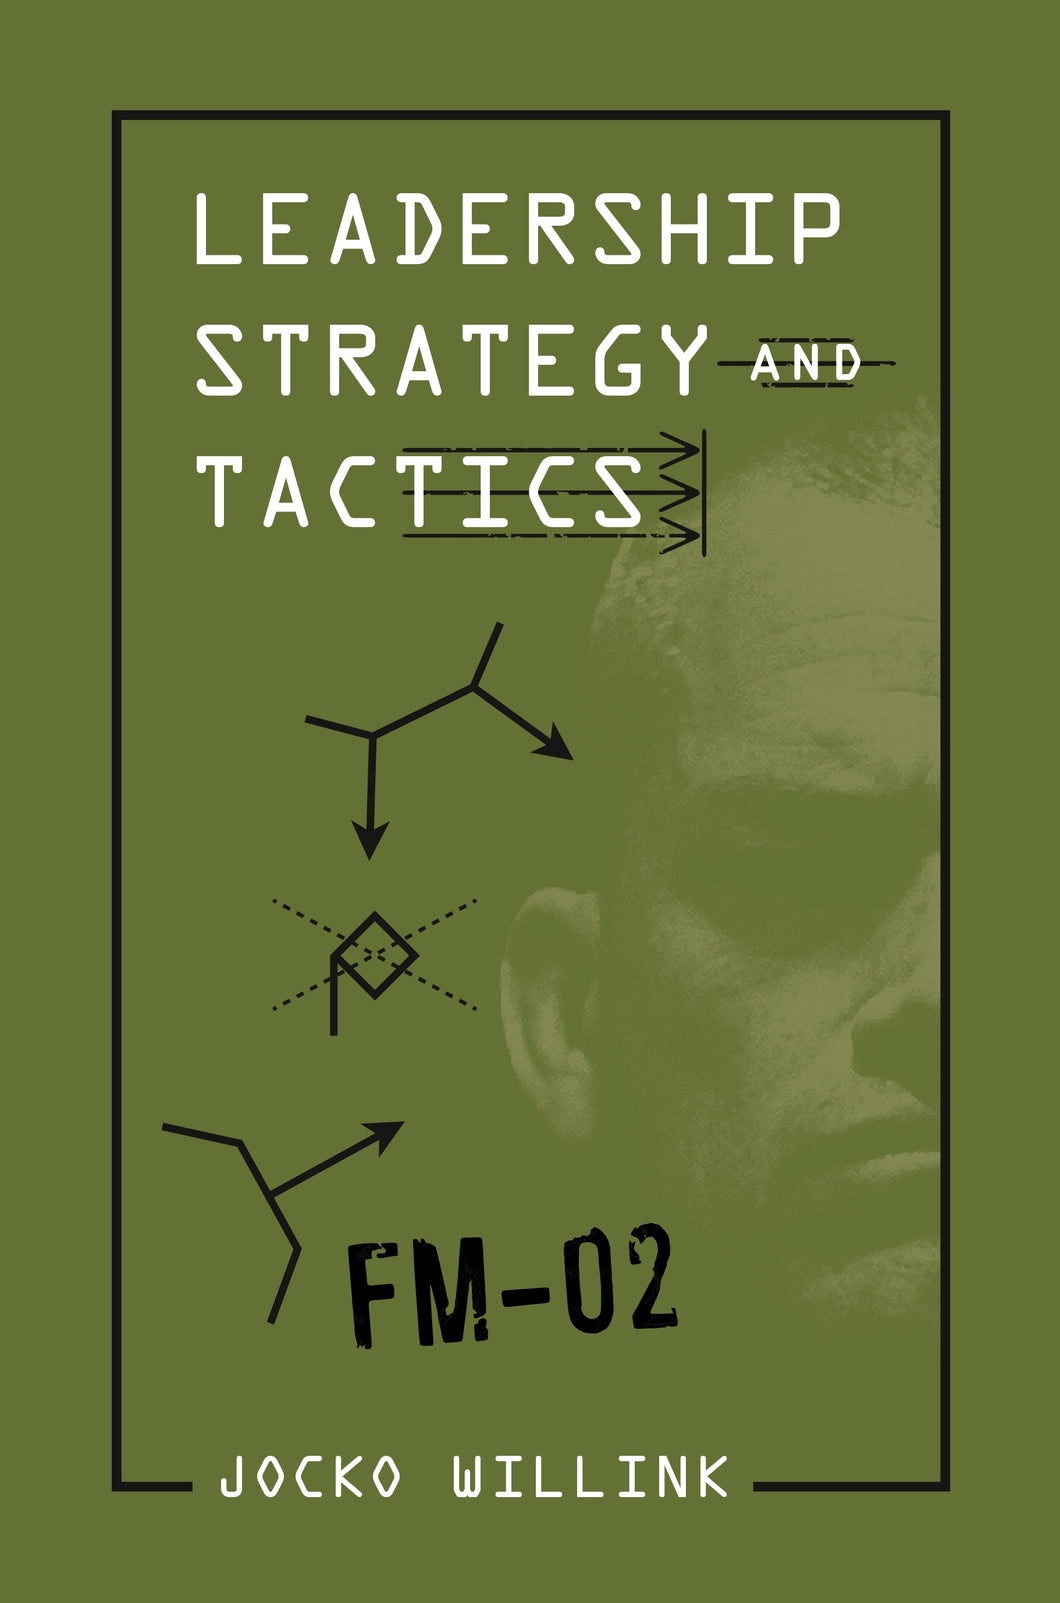 Leadership Strategy and Tactics-Field Manual